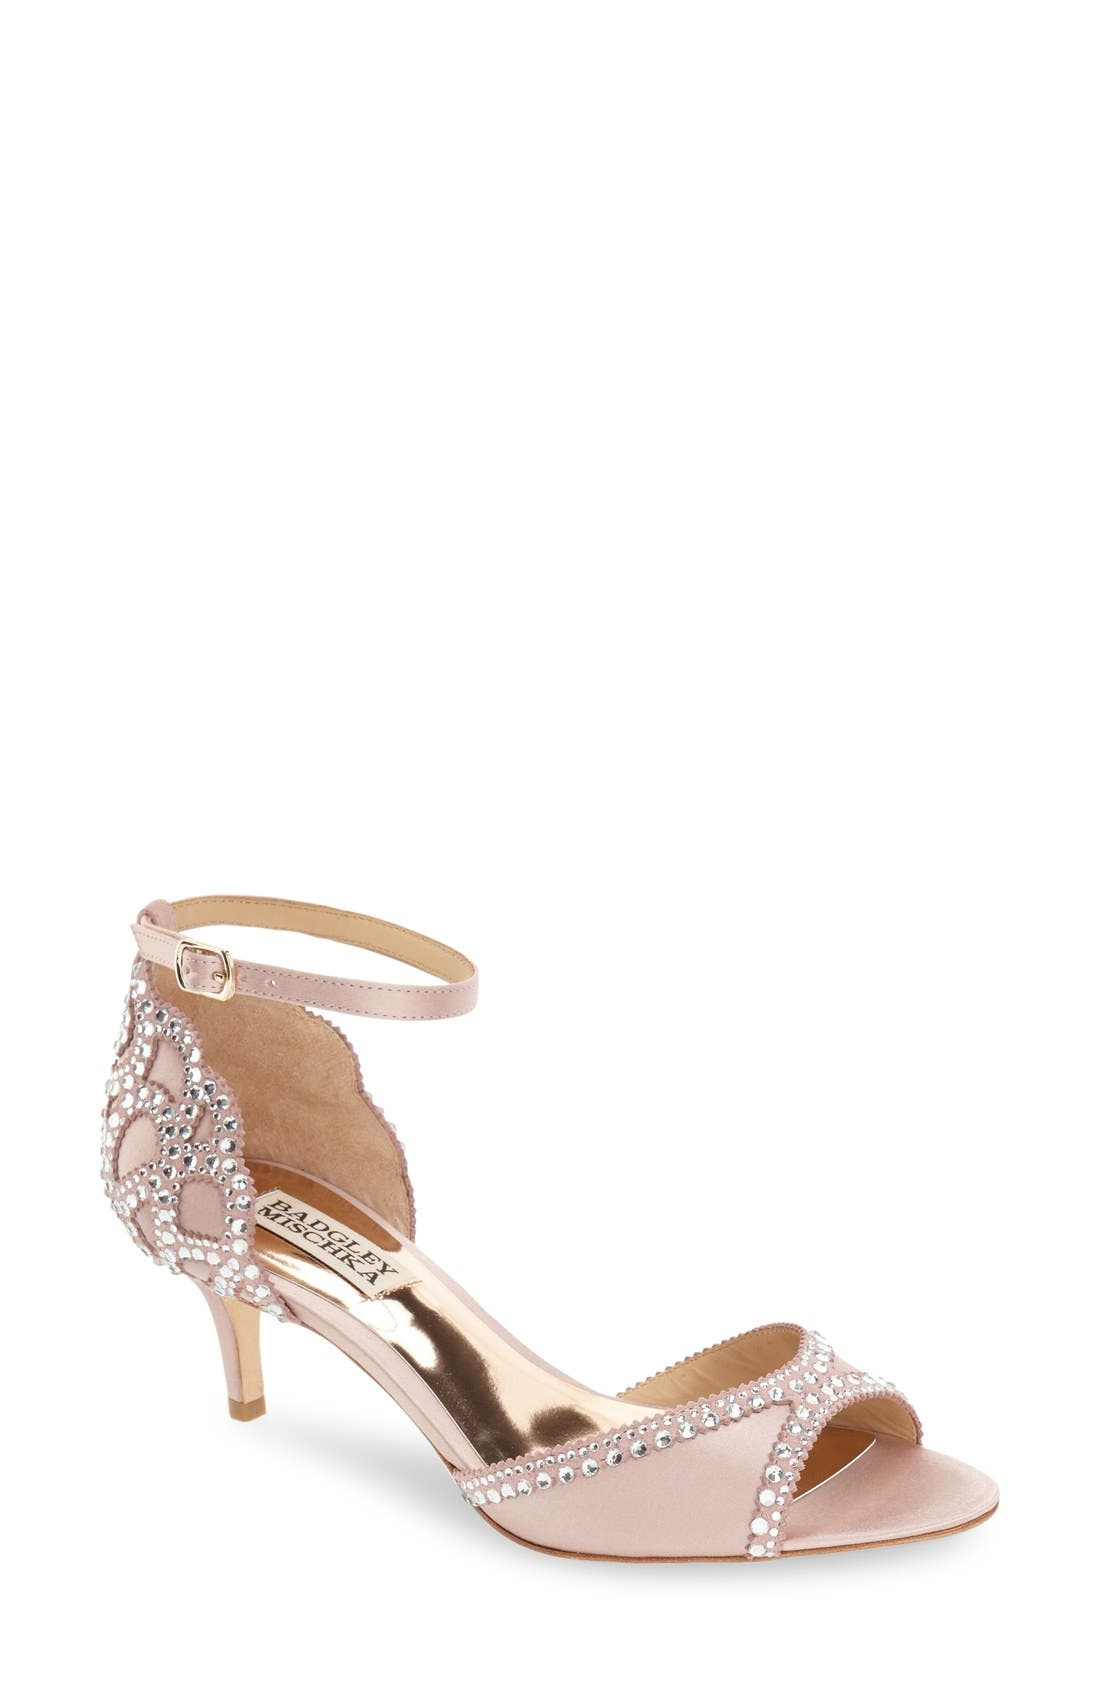 'Gillian' Crystal Embellished d'Orsay Sandal,                             Main thumbnail 1, color,                             BLUSH SATIN